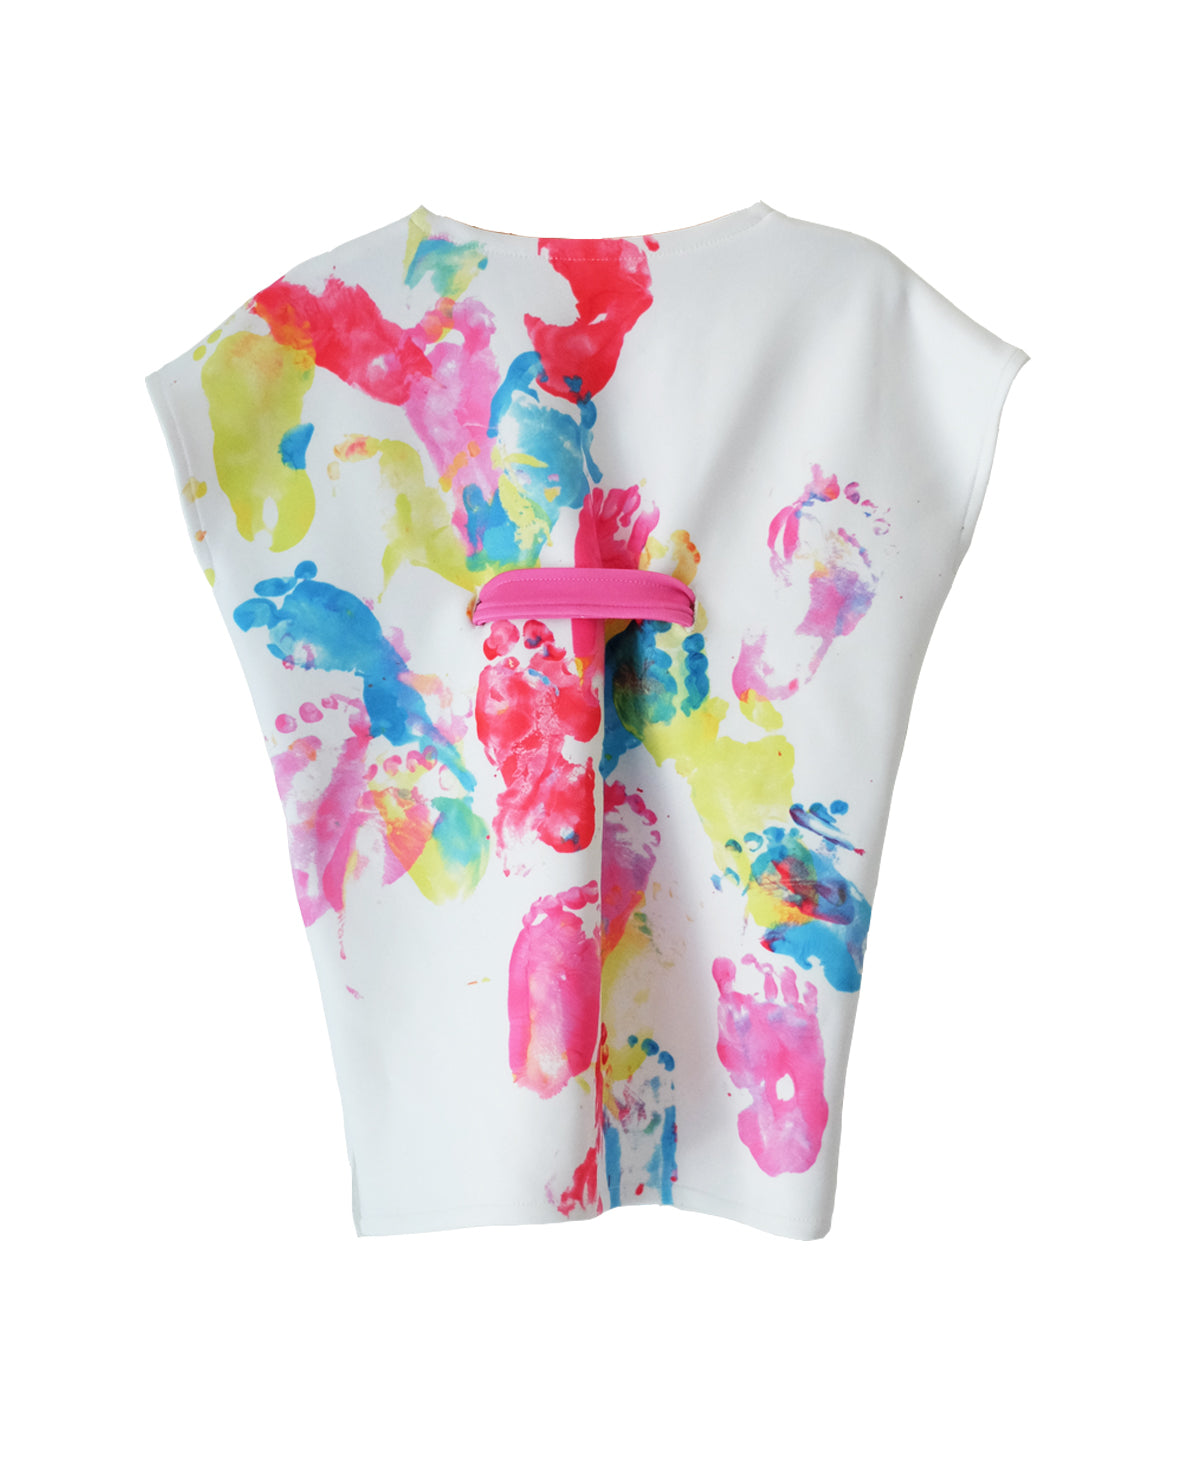 FOOTPRINTS MiniMe Kimono Dress